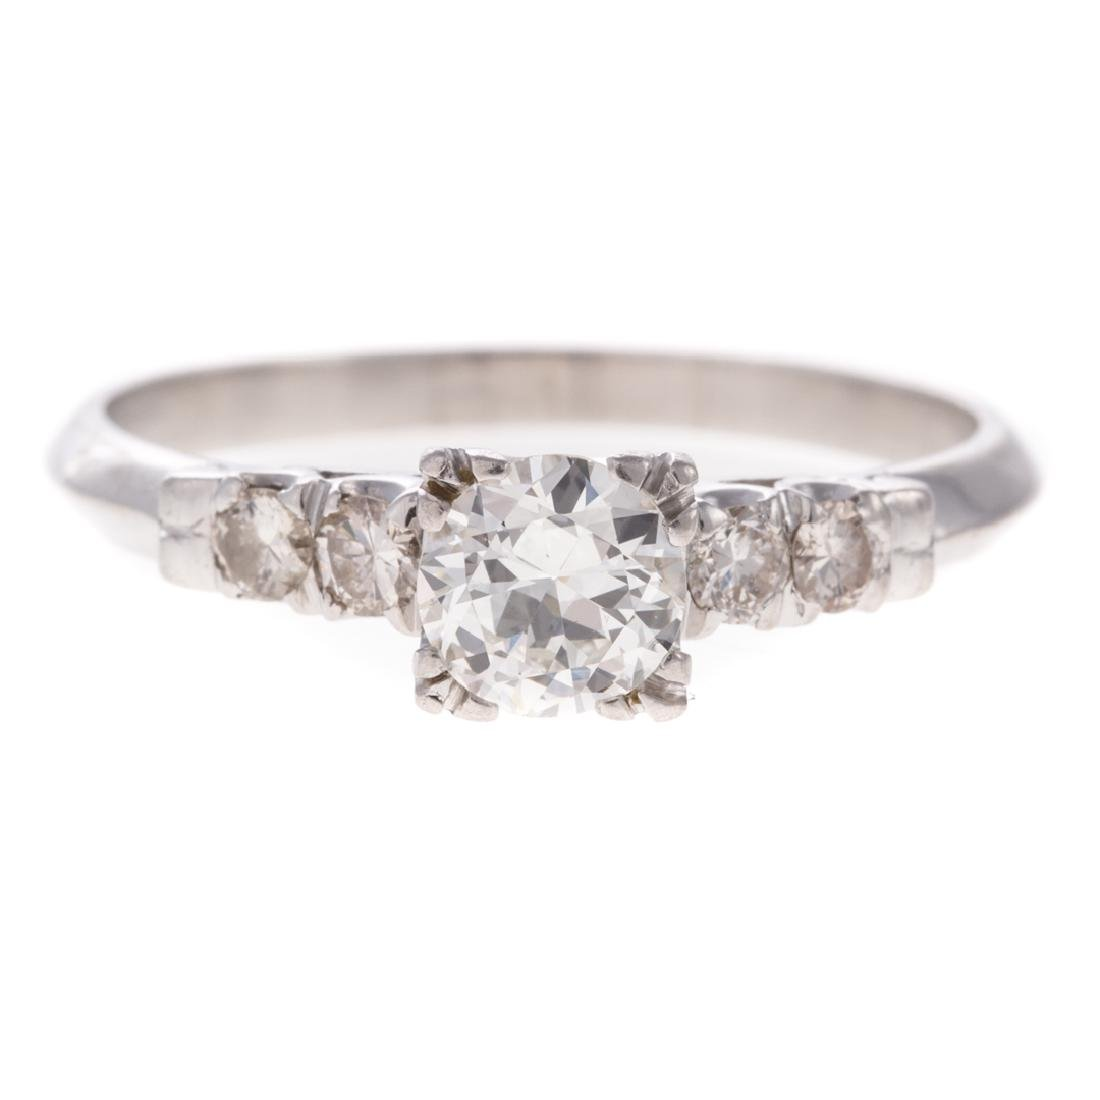 A Lady's Diamond Engagement Ring in Platinum